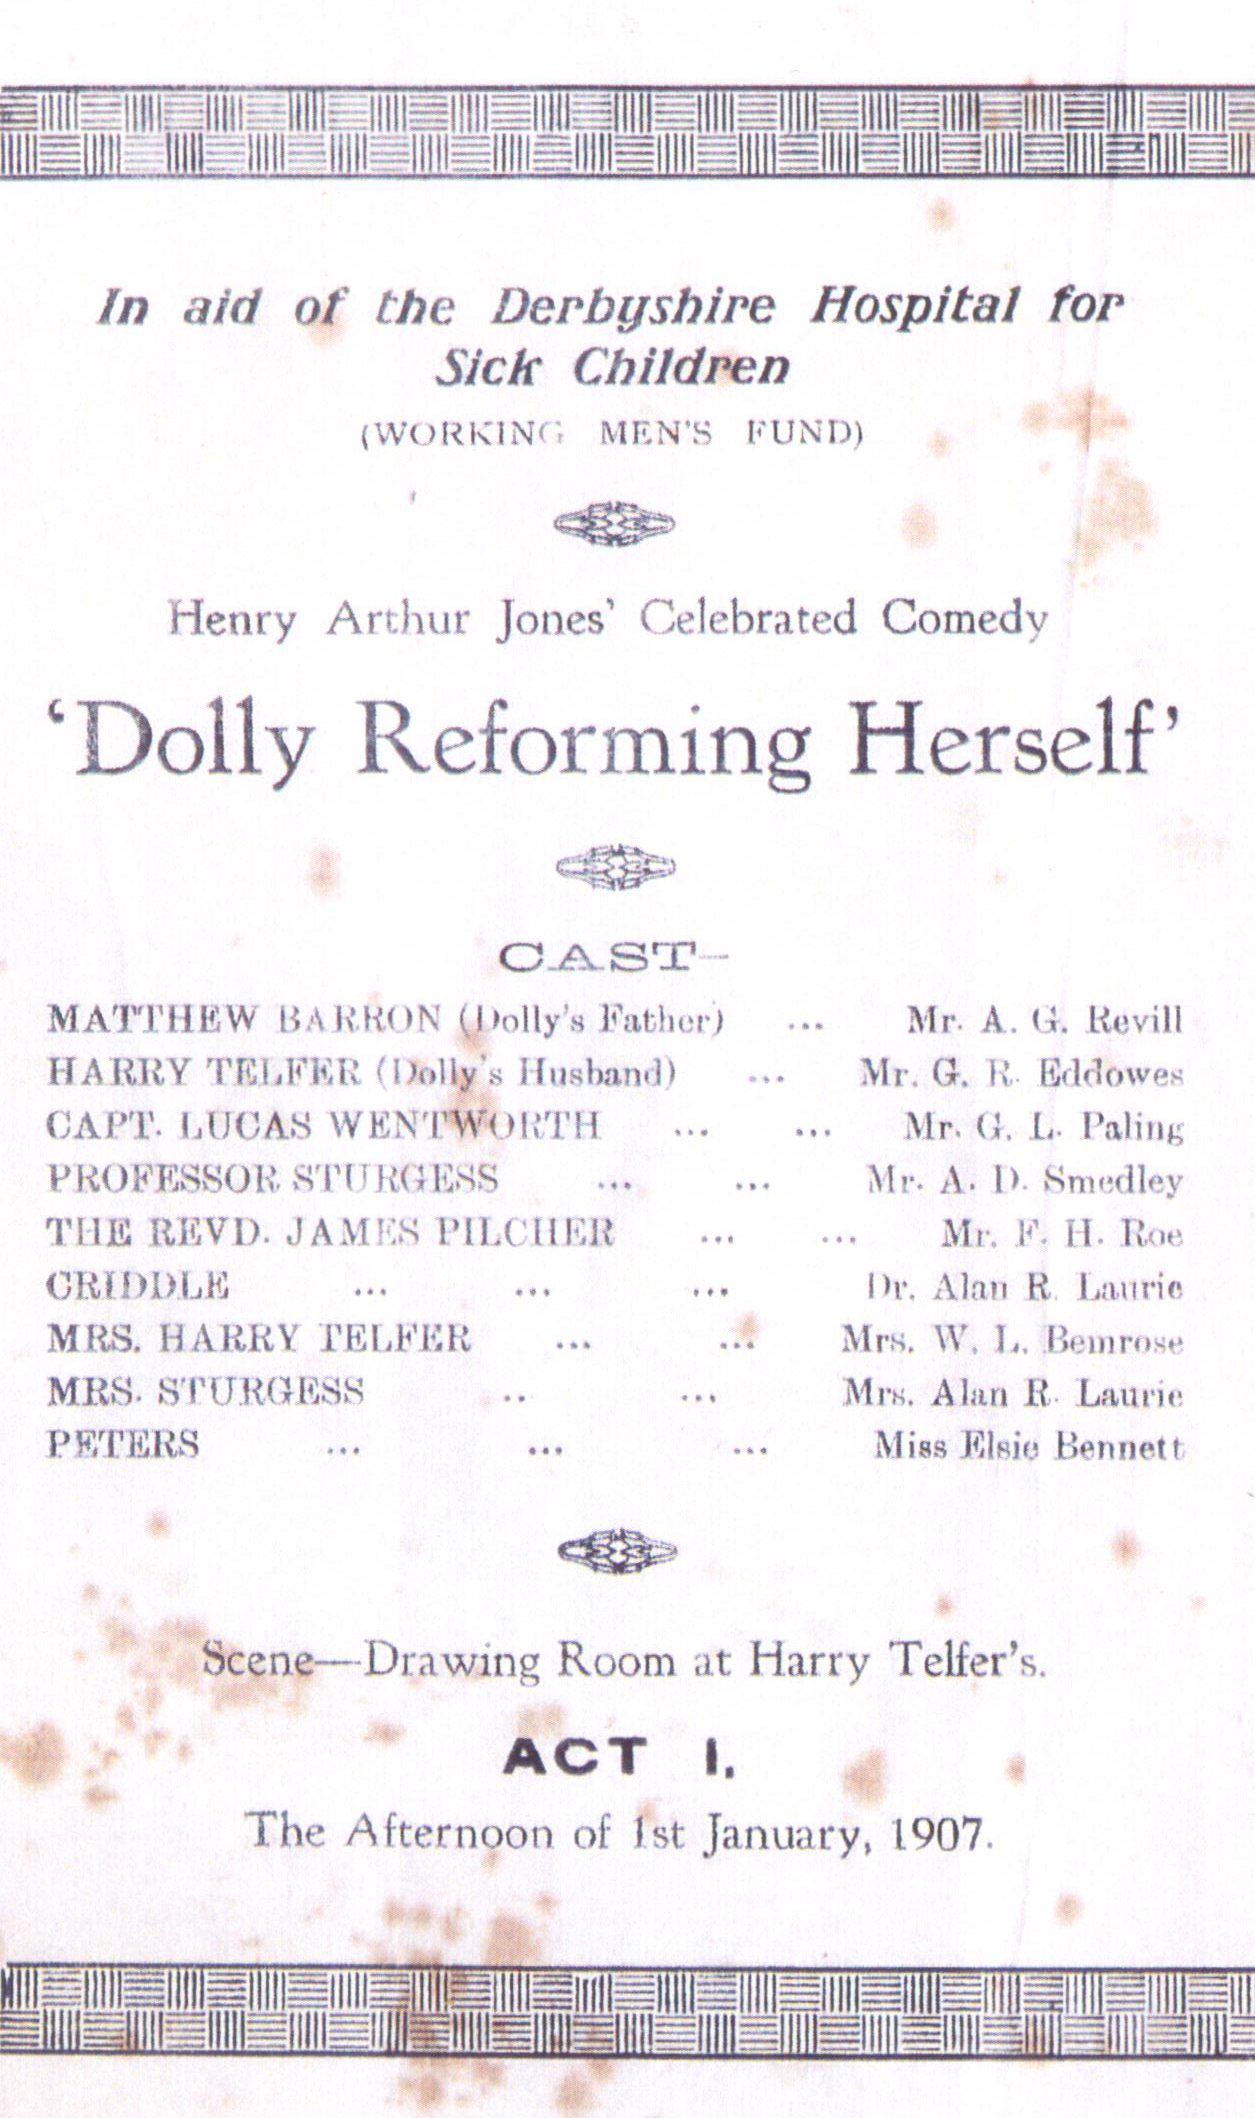 'Dolly Reforming Herself' 1924